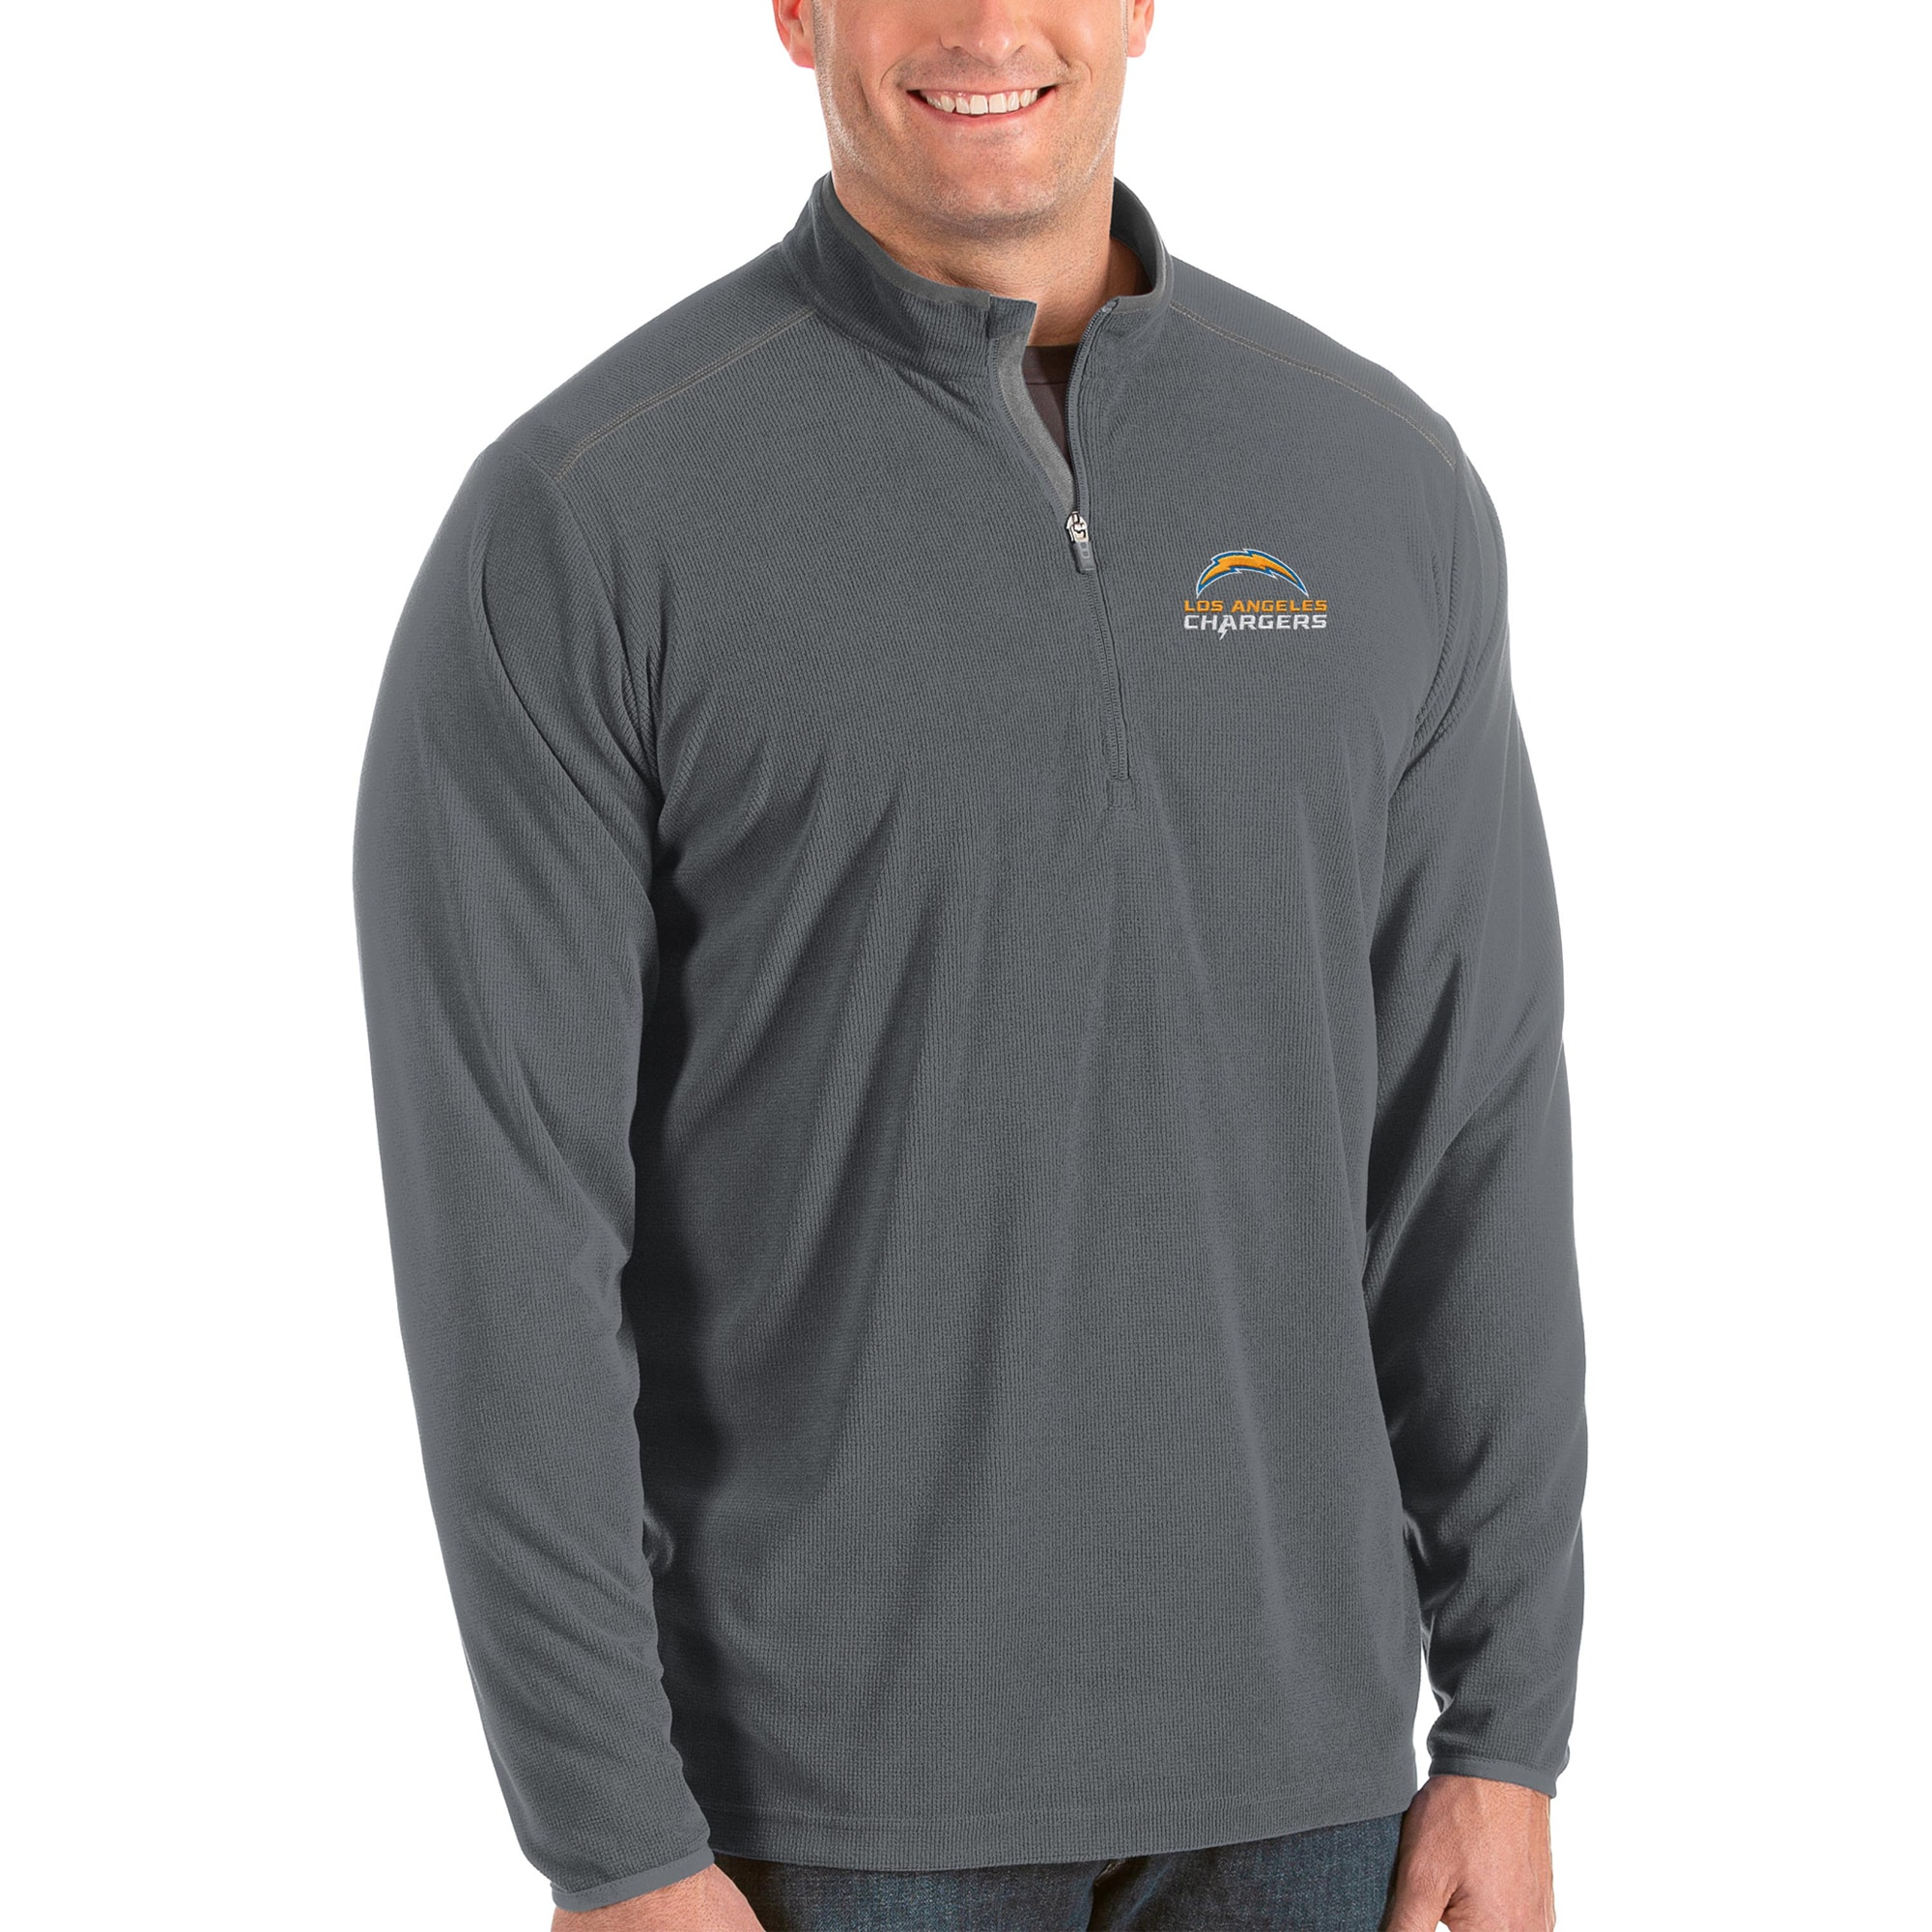 Los Angeles Chargers Antigua Big & Tall Glacier Quarter-Zip Pullover Jacket - Steel